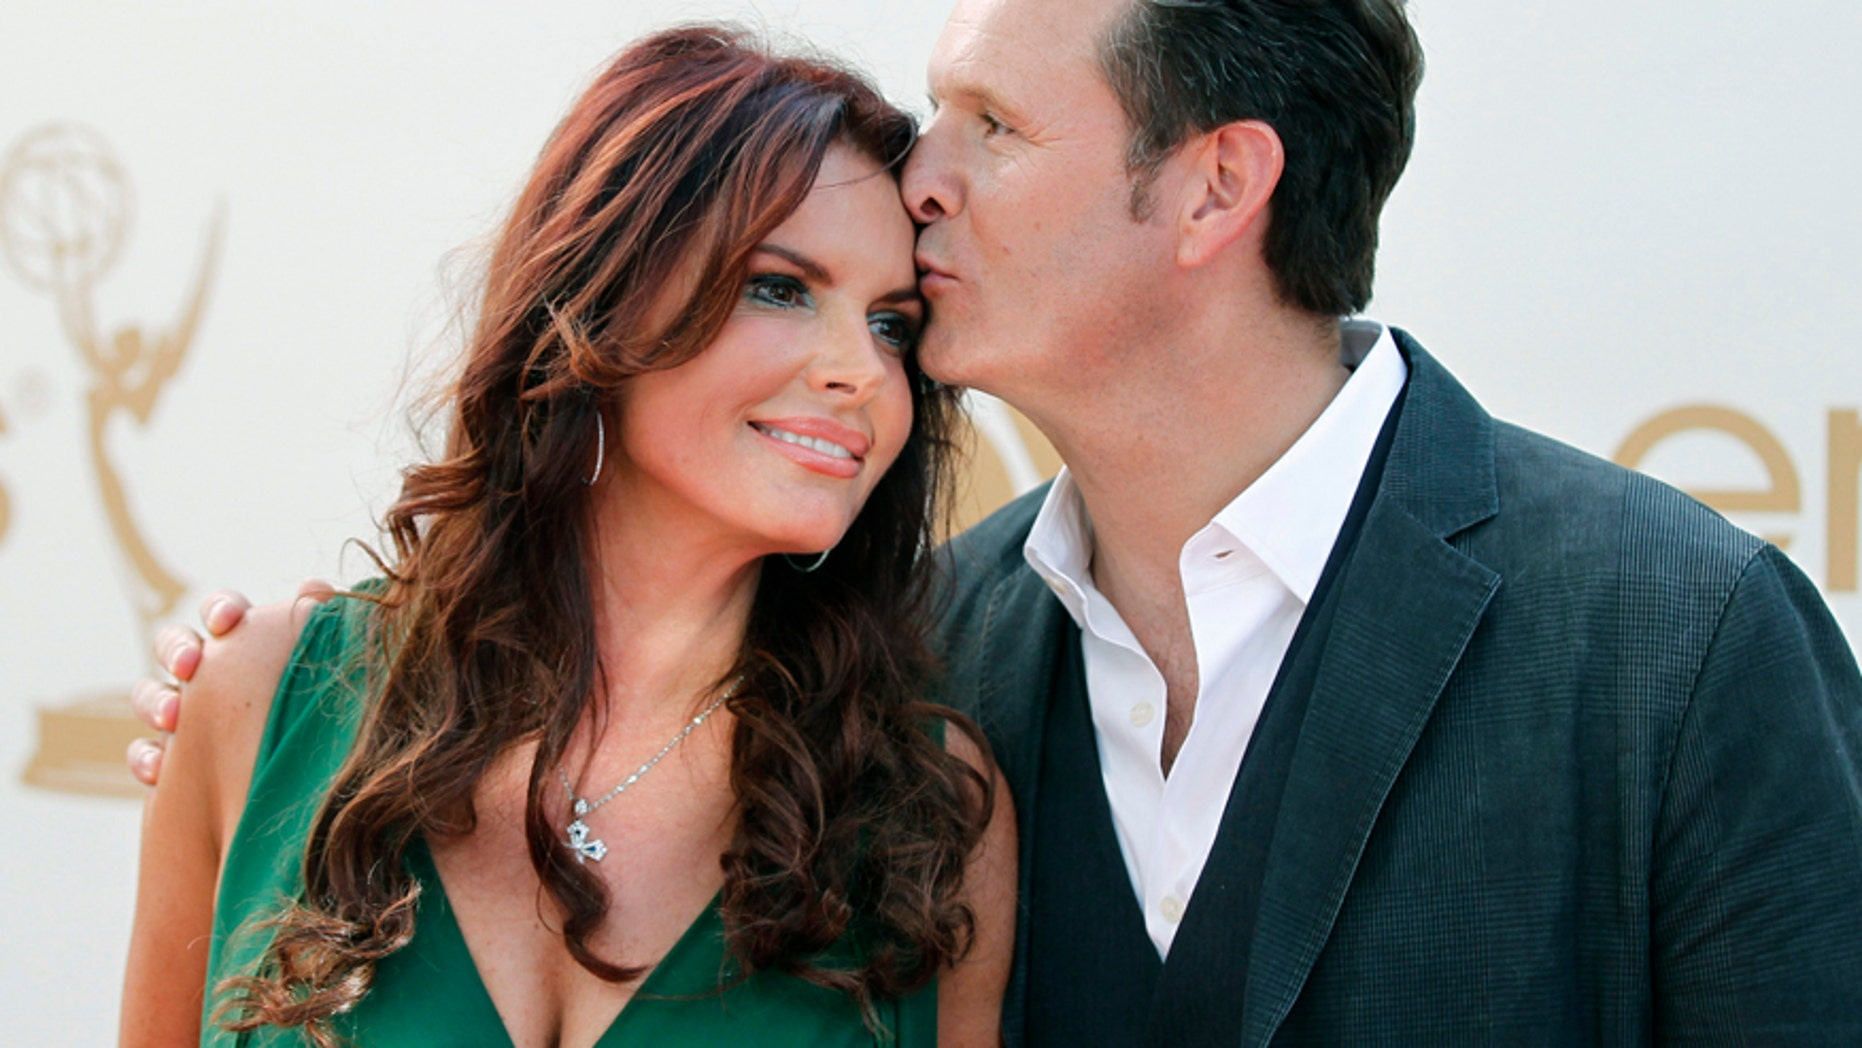 Producer Mark Burnett and his wife, actress and producer Roma Downey, arrive at the 63rd Primetime Emmy Awards in Los Angeles September 18, 2011. REUTERS/Danny Moloshok (UNITED STATES  - Tags: ENTERTAINMENT)   (EMMYS-ARRIVALS) - RTR2RISO